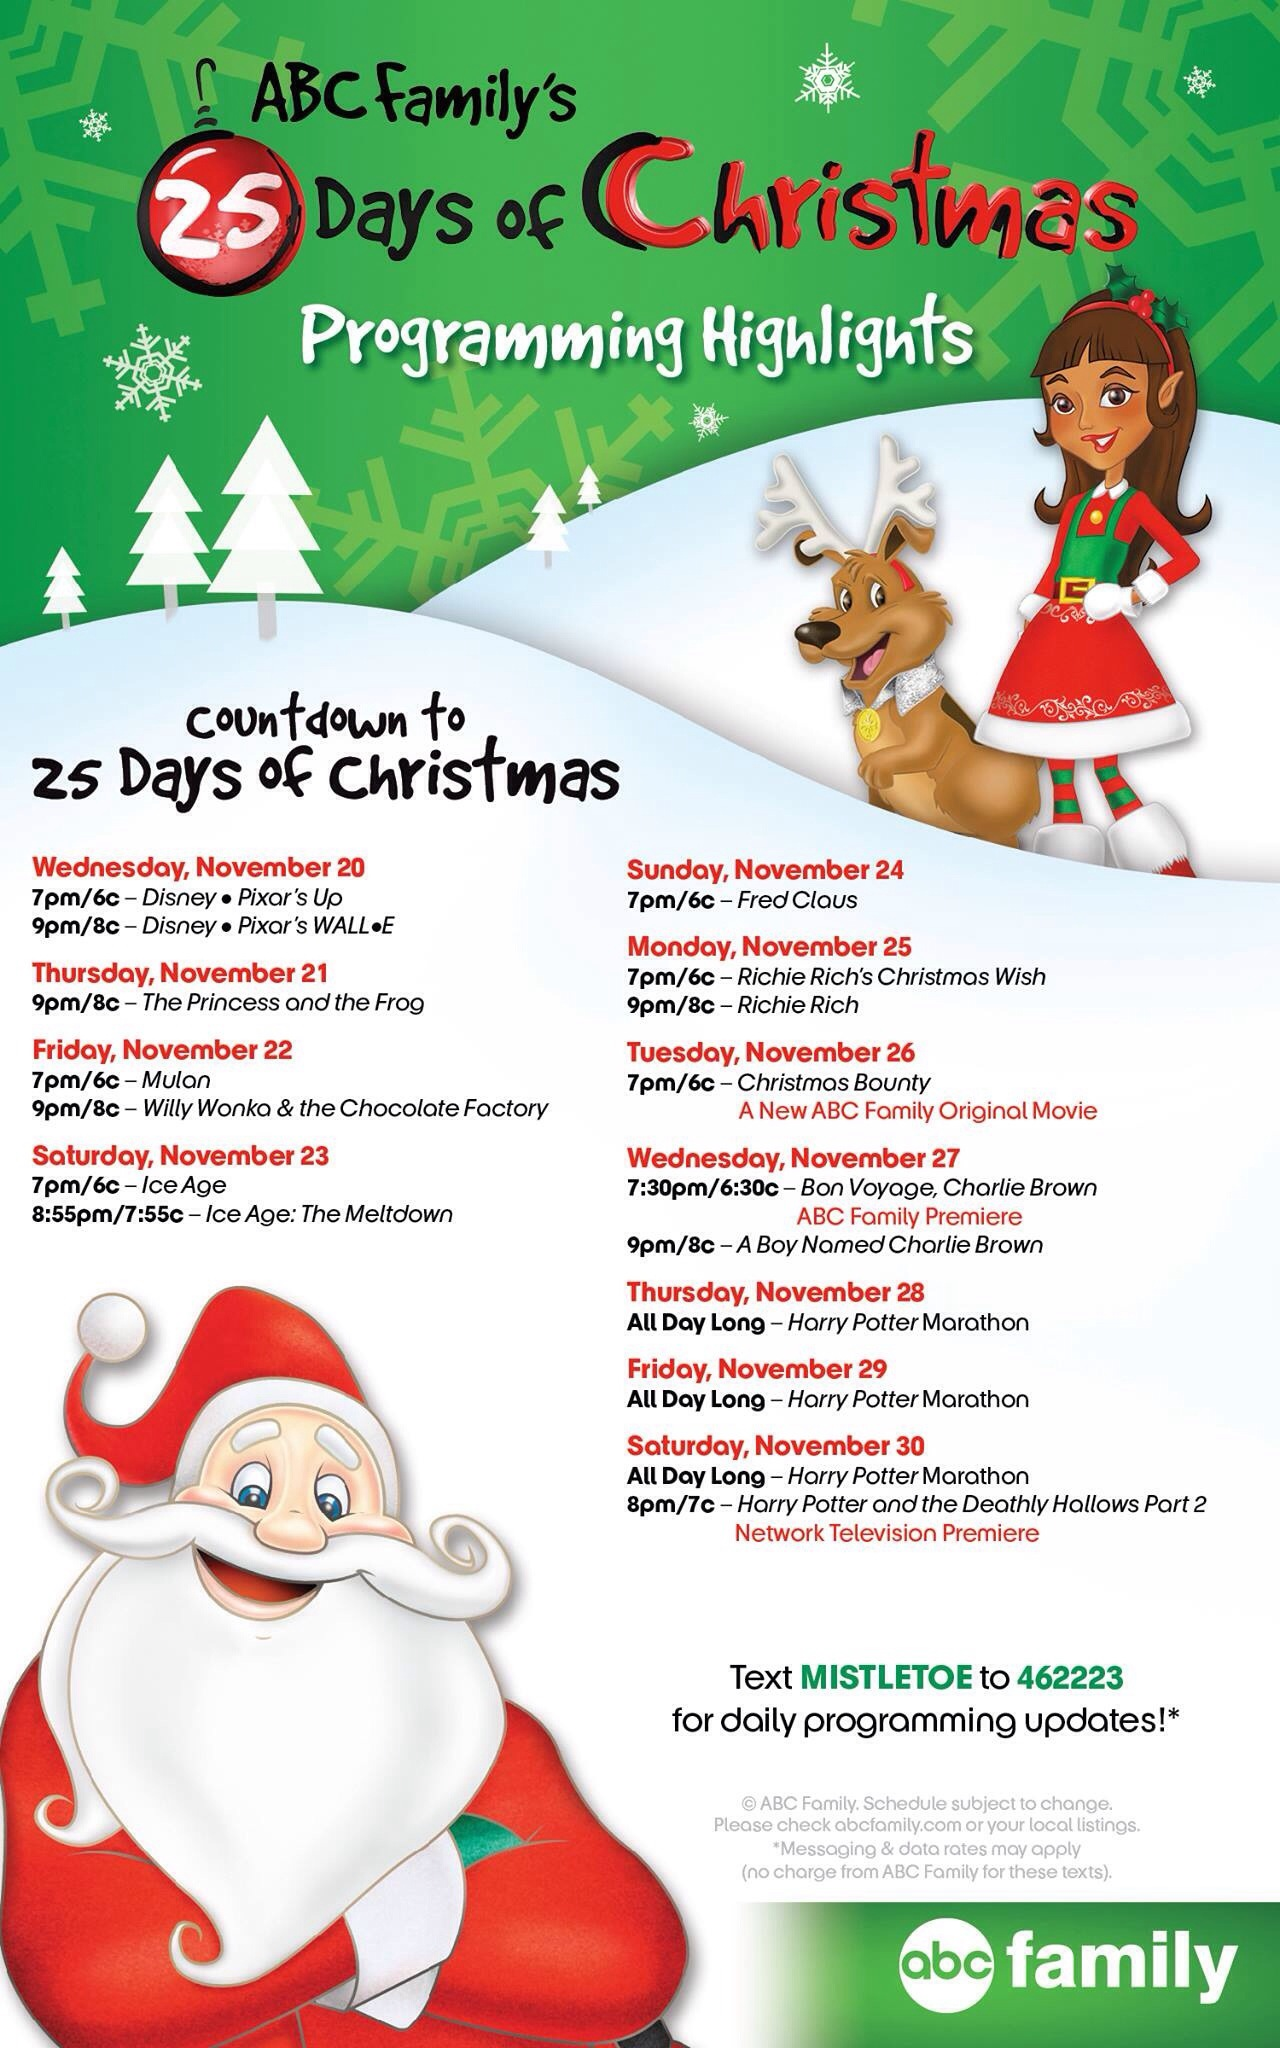 ABC Family's Countdown to the 25 Days of Christmas 2013 «